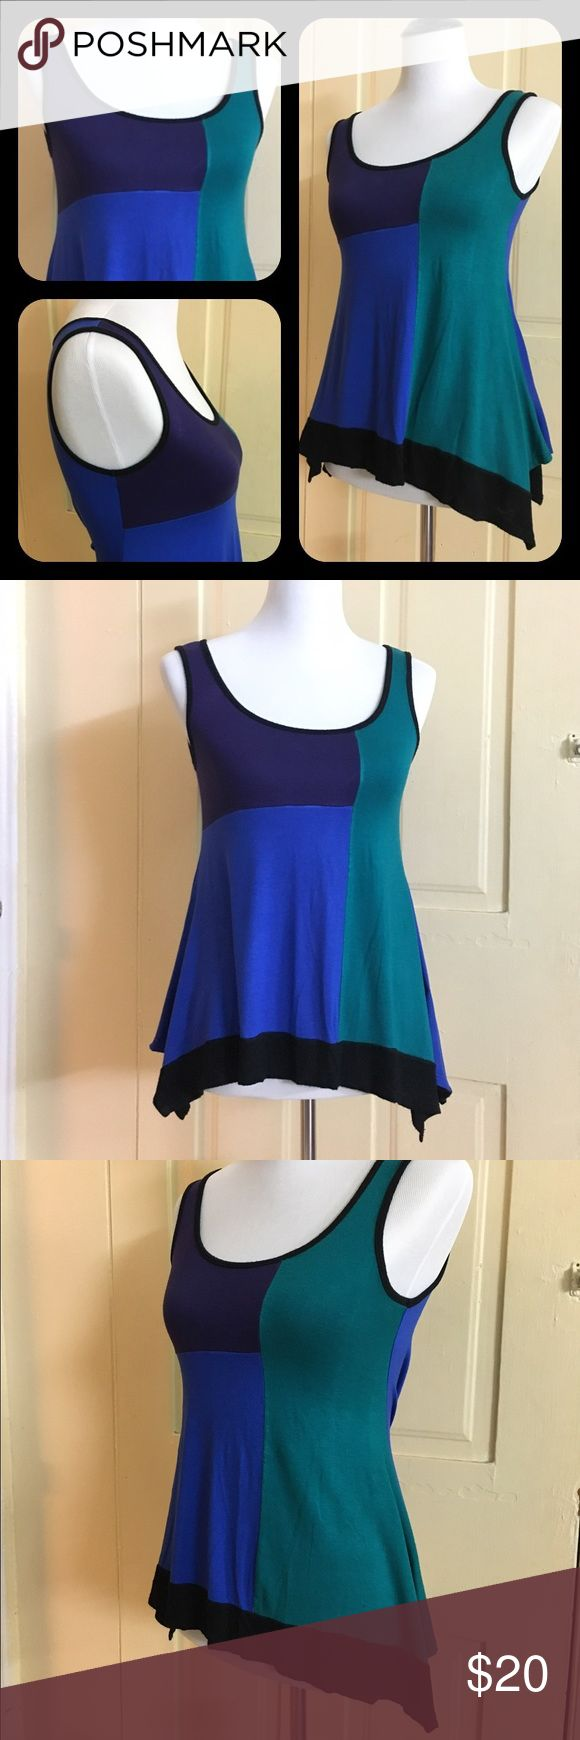 Dress Barn Sleeveless Flowy Top (petite small) This adorable flowy top from Dress Barn will hug your curves in all the right spots!😉 Colors: green, blue, and purple with black trim.  Women's size petite small (but the sizes run a bit large... plus the fabric is stretchy).  95% rayon, 5% spandex.  Made in the USA. Dress Barn Tops Blouses